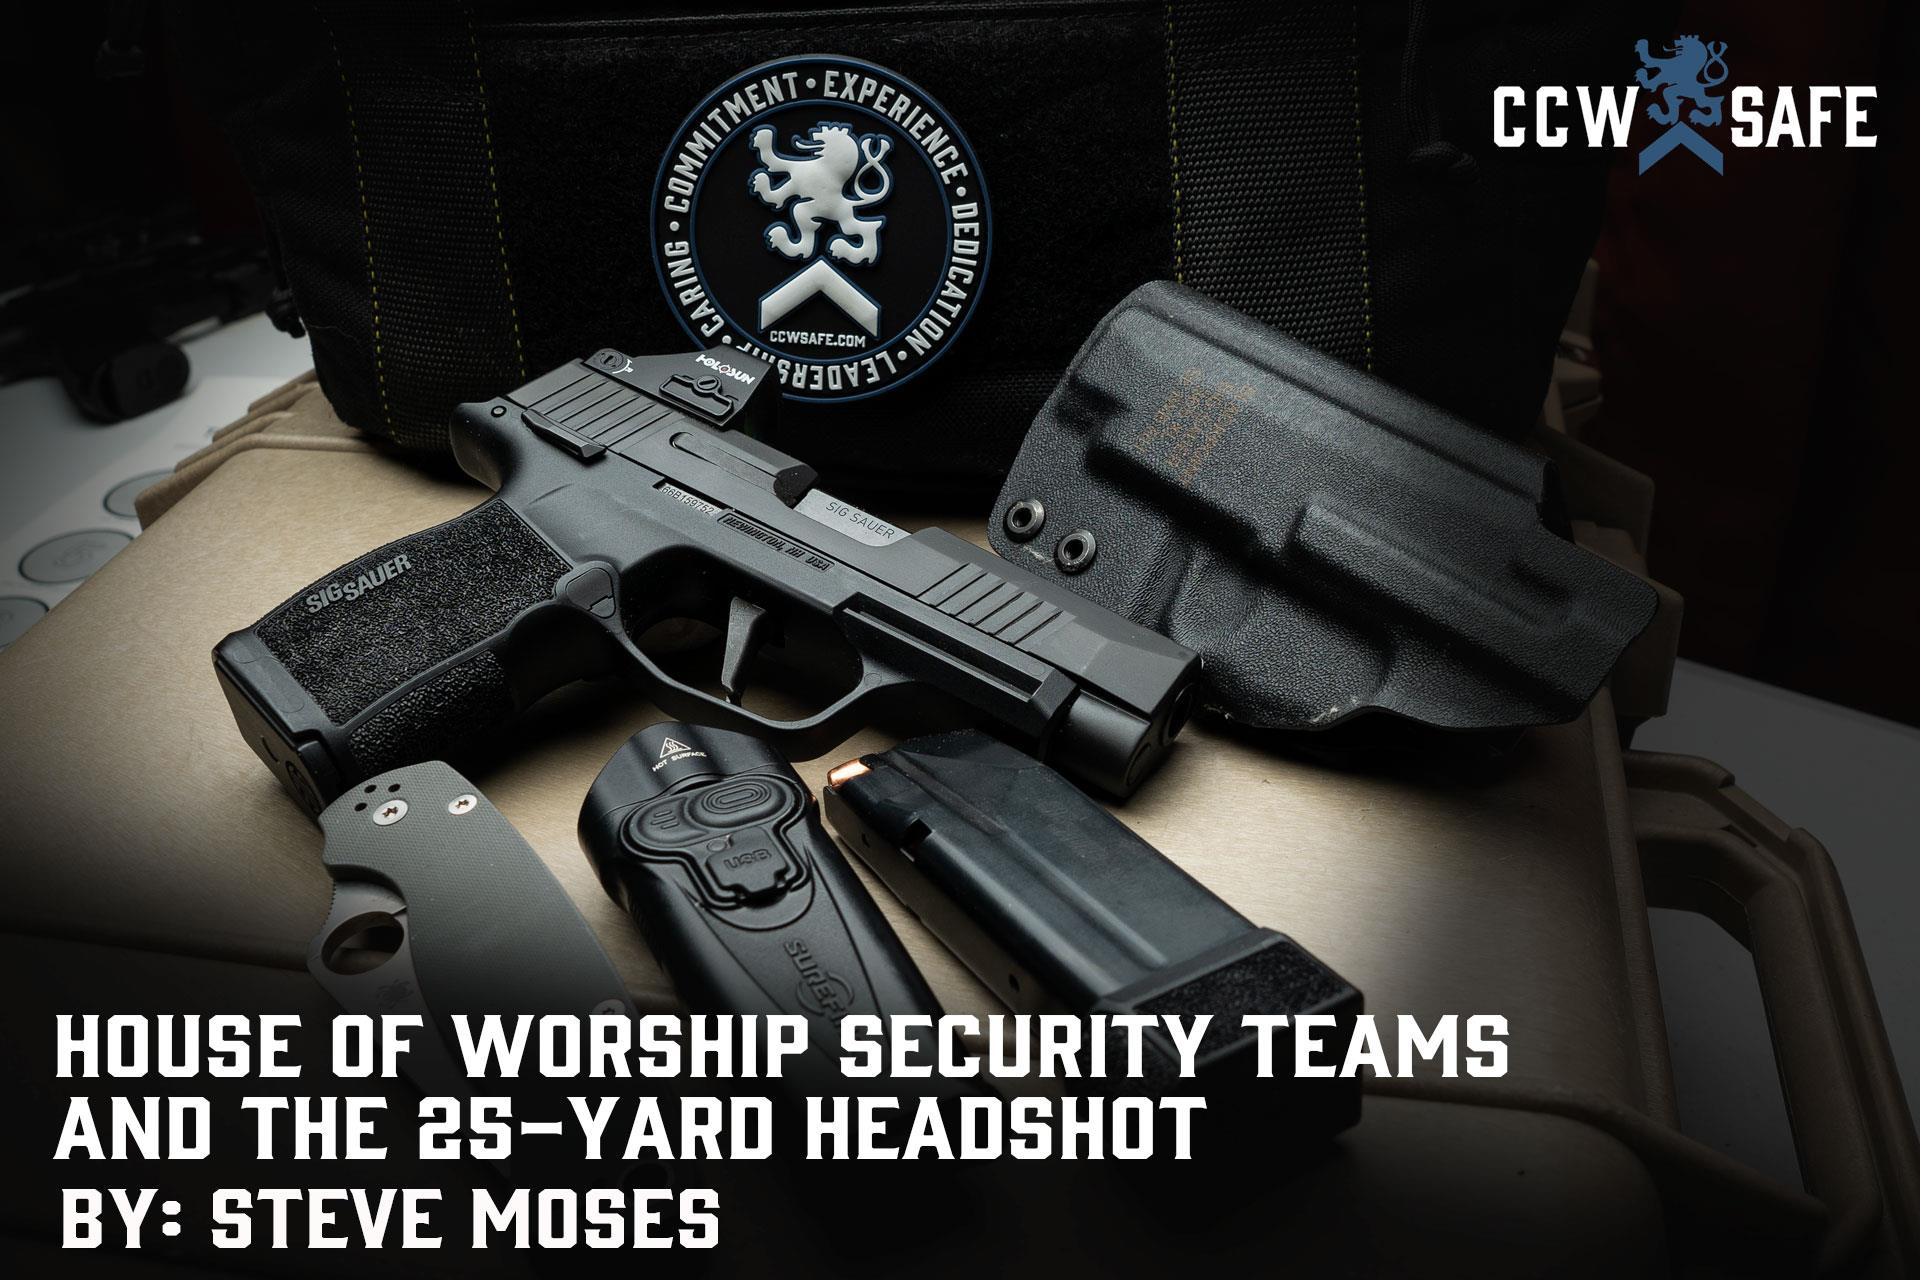 HOUSE OF WORSHIP SECURITY TEAMS AND THE 25-YARD HEADSHOT